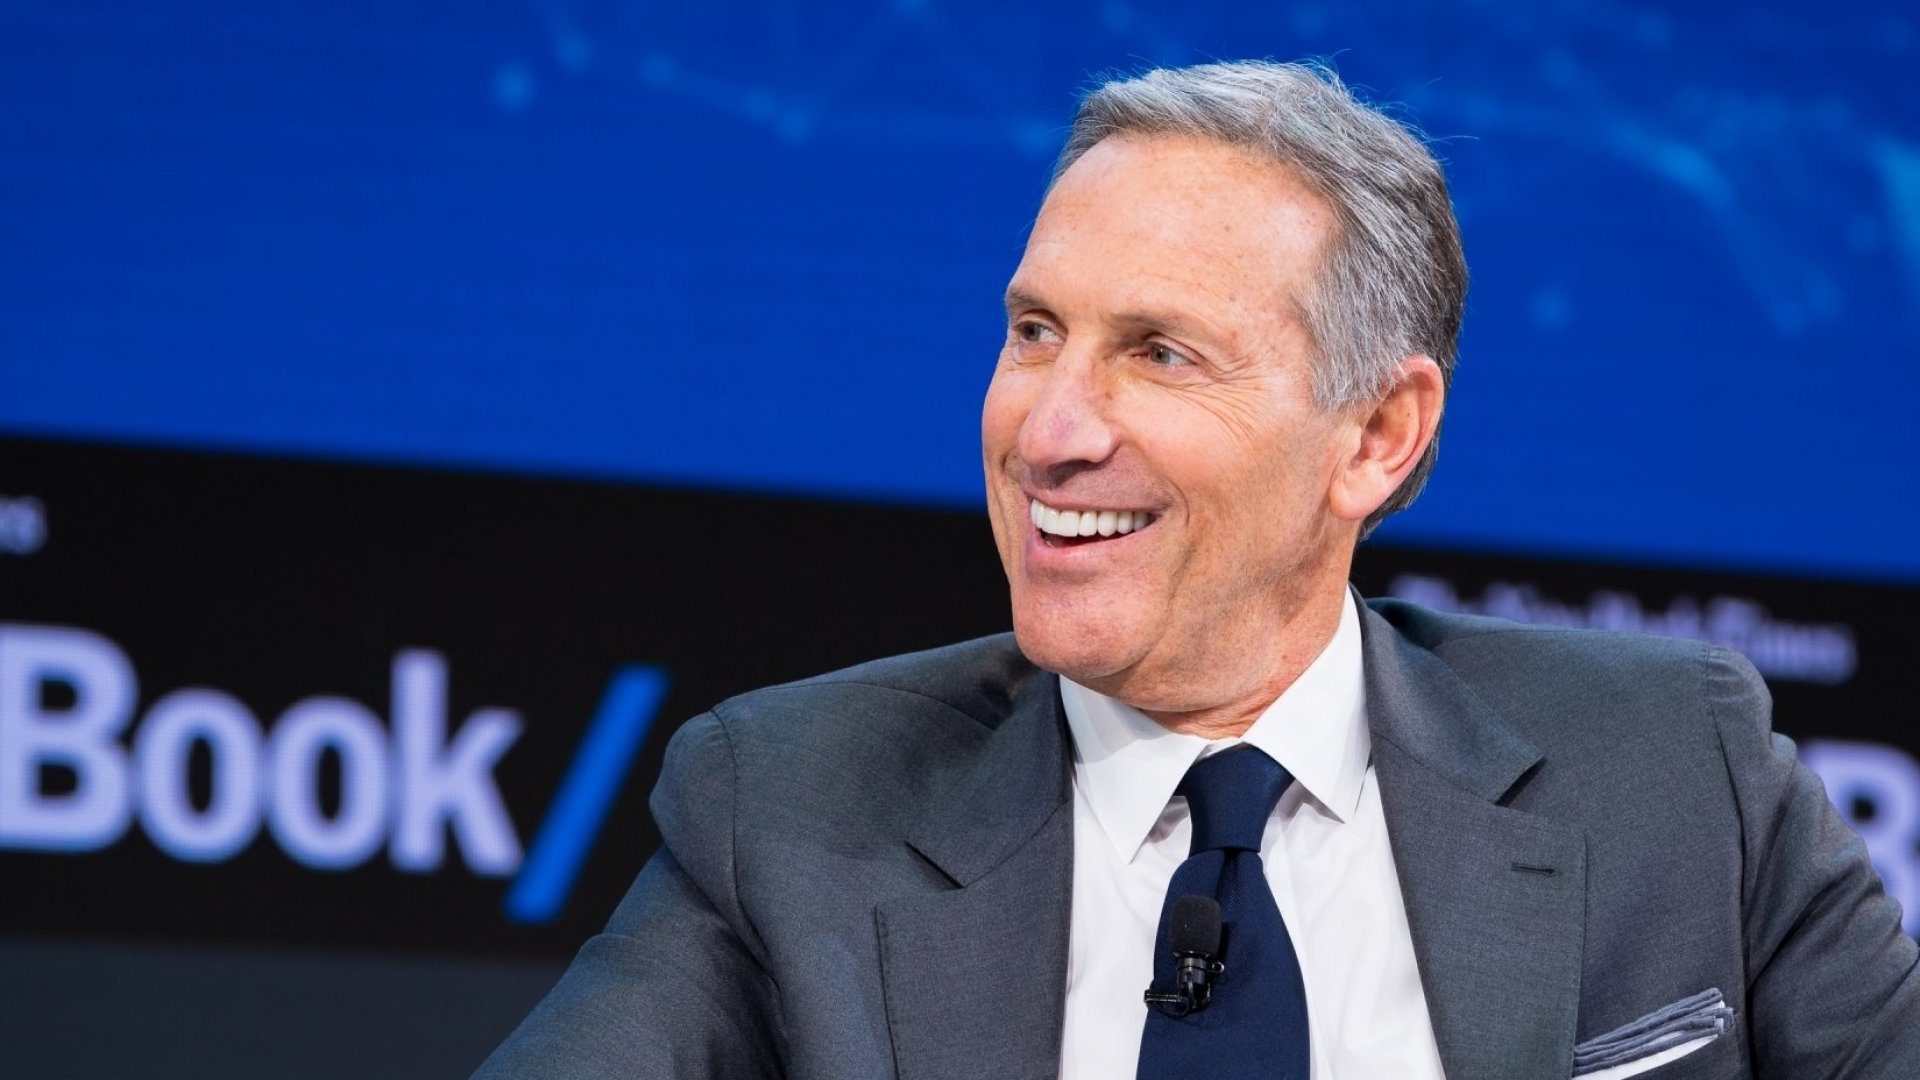 Howard Schultz speaks onstage at <em>The New York Times'</em>2017 DealBook Conference at Jazz at Lincoln Center on November 9, 2017, in New York City.